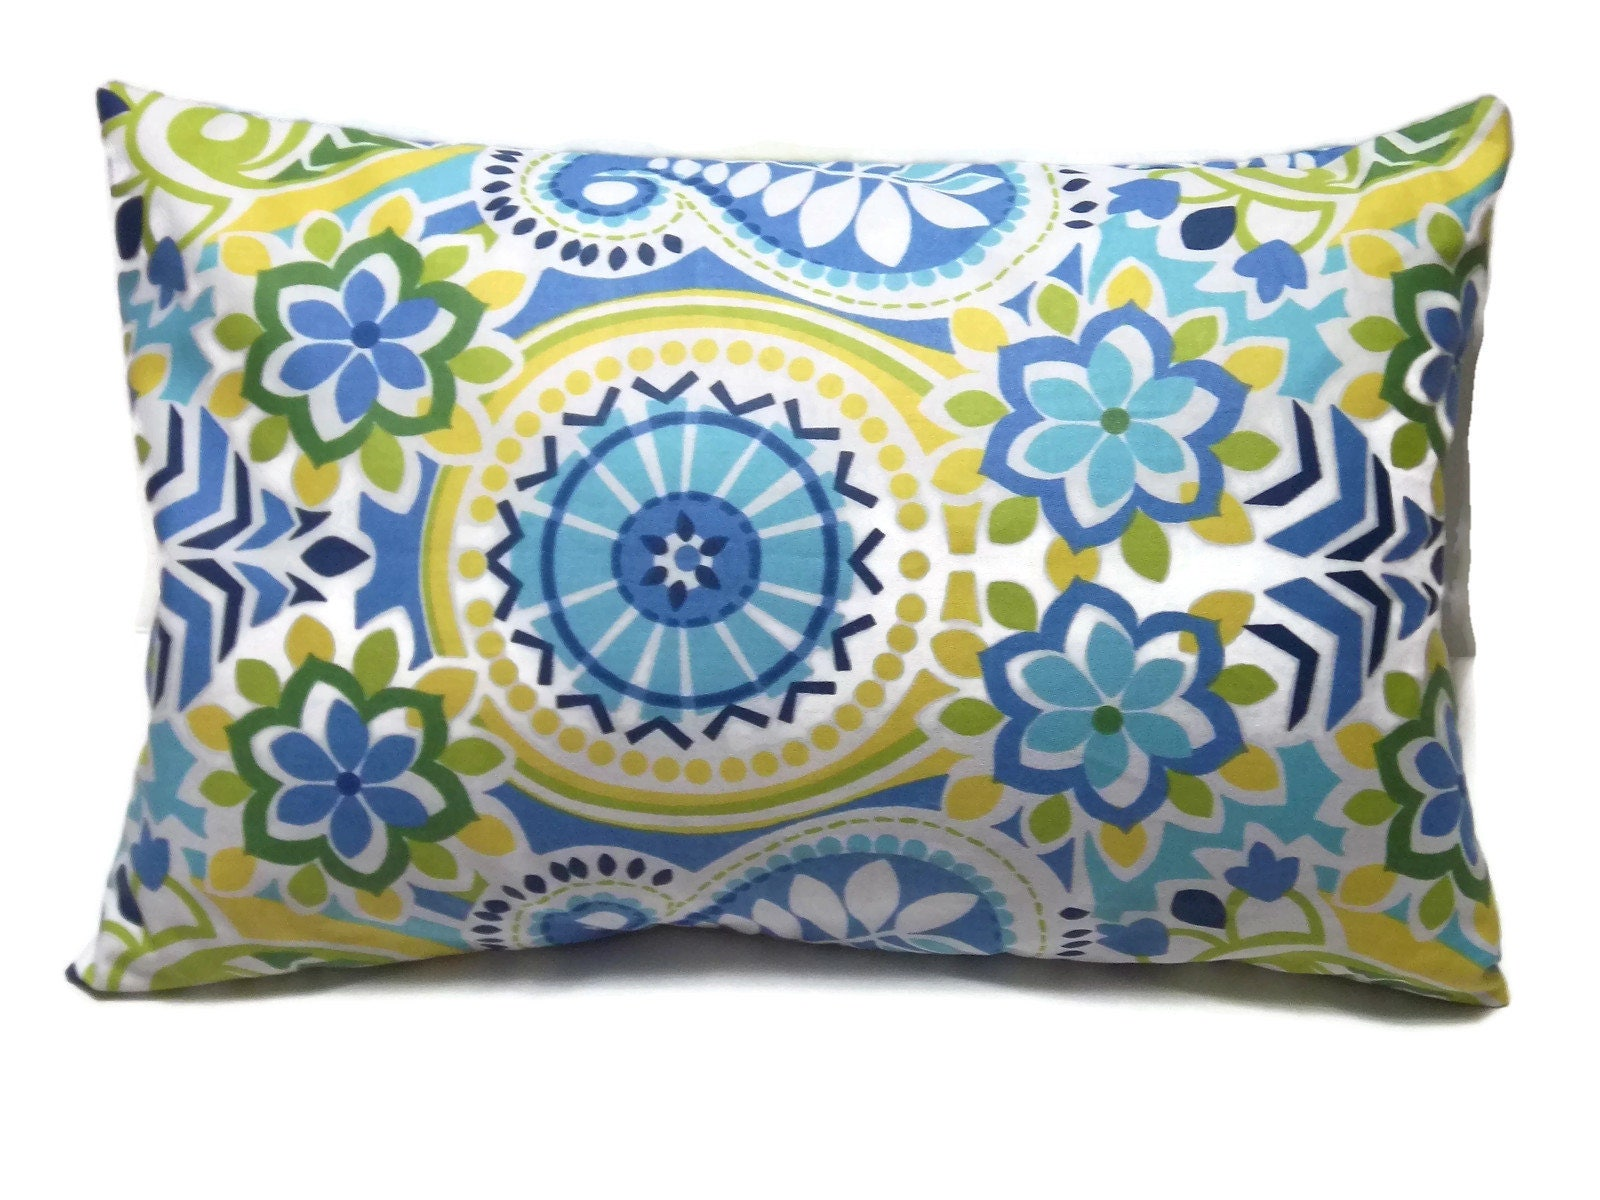 Navy Blue Decorative Pillow Covers : Decorative Pillow Cover Navy Blue Sky Blue Olive Green